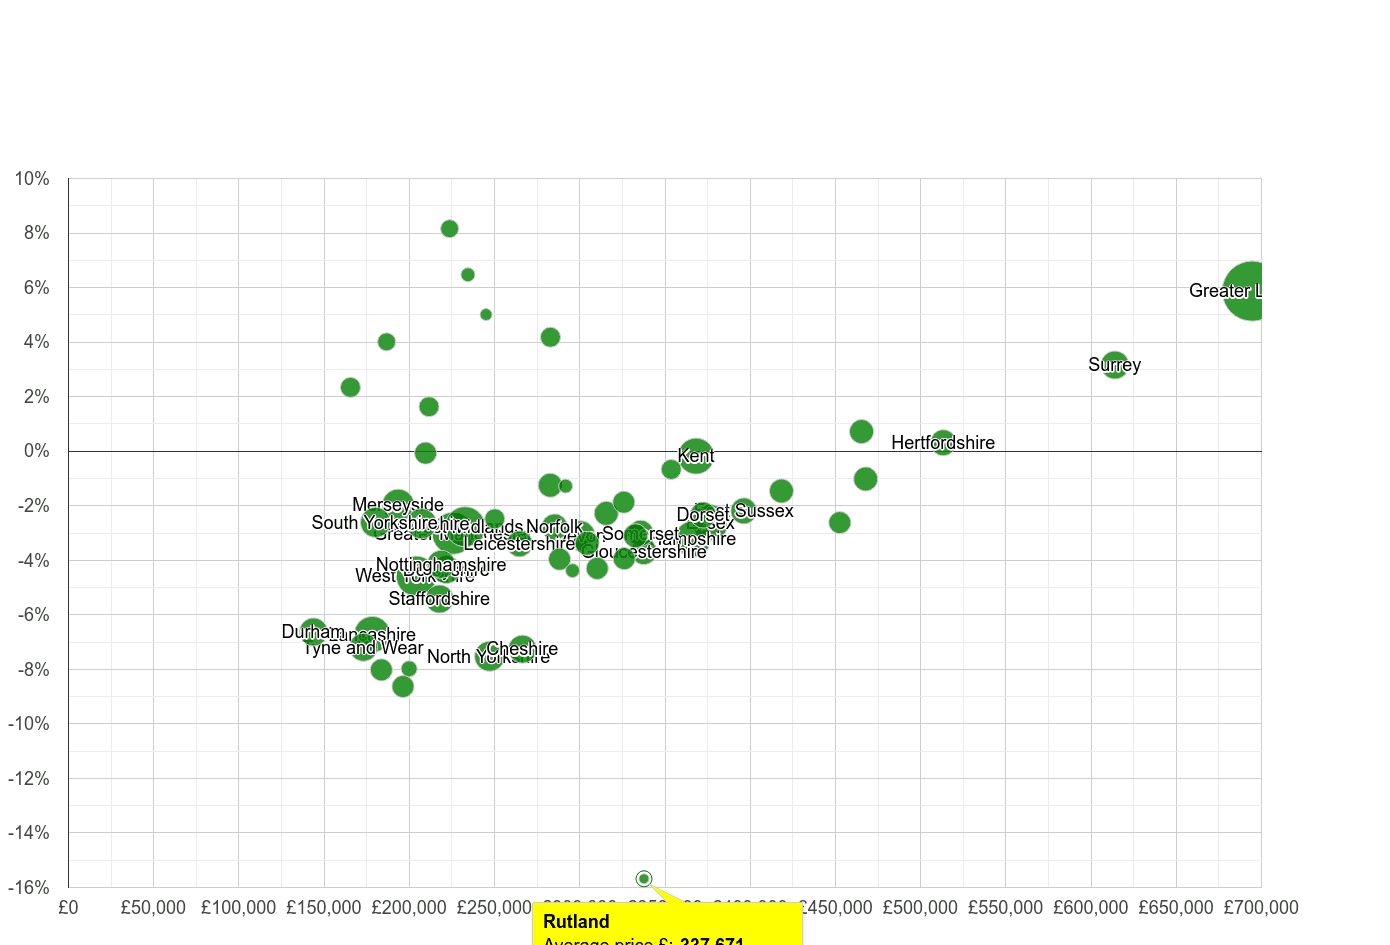 Rutland house prices compared to other counties